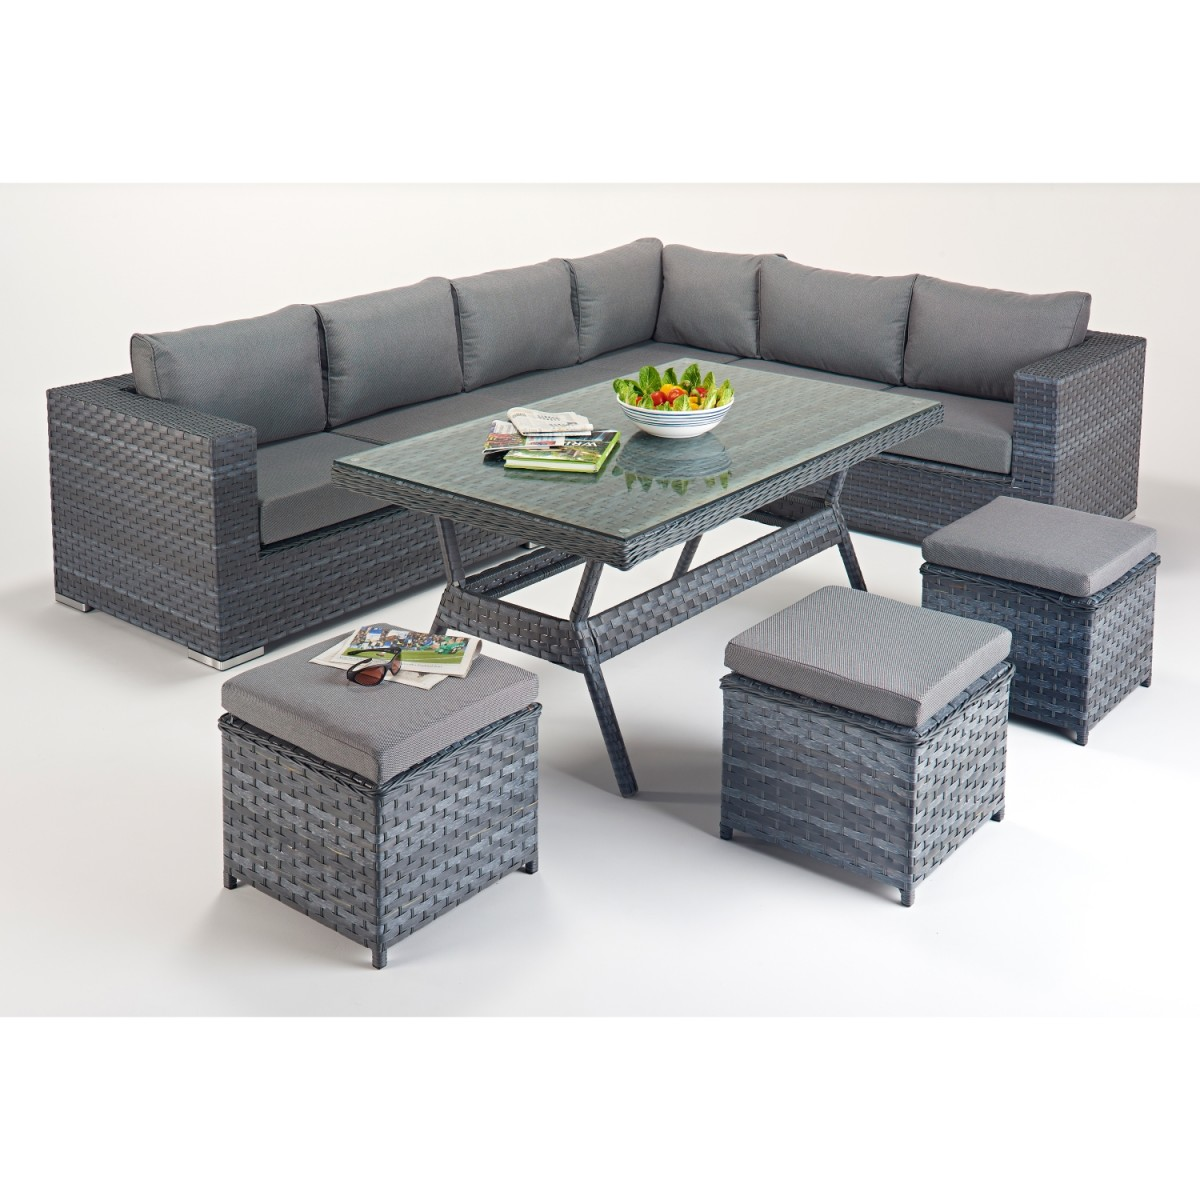 Rattan set platinum corner sofa dining set wgf 513 right for Corner dining set